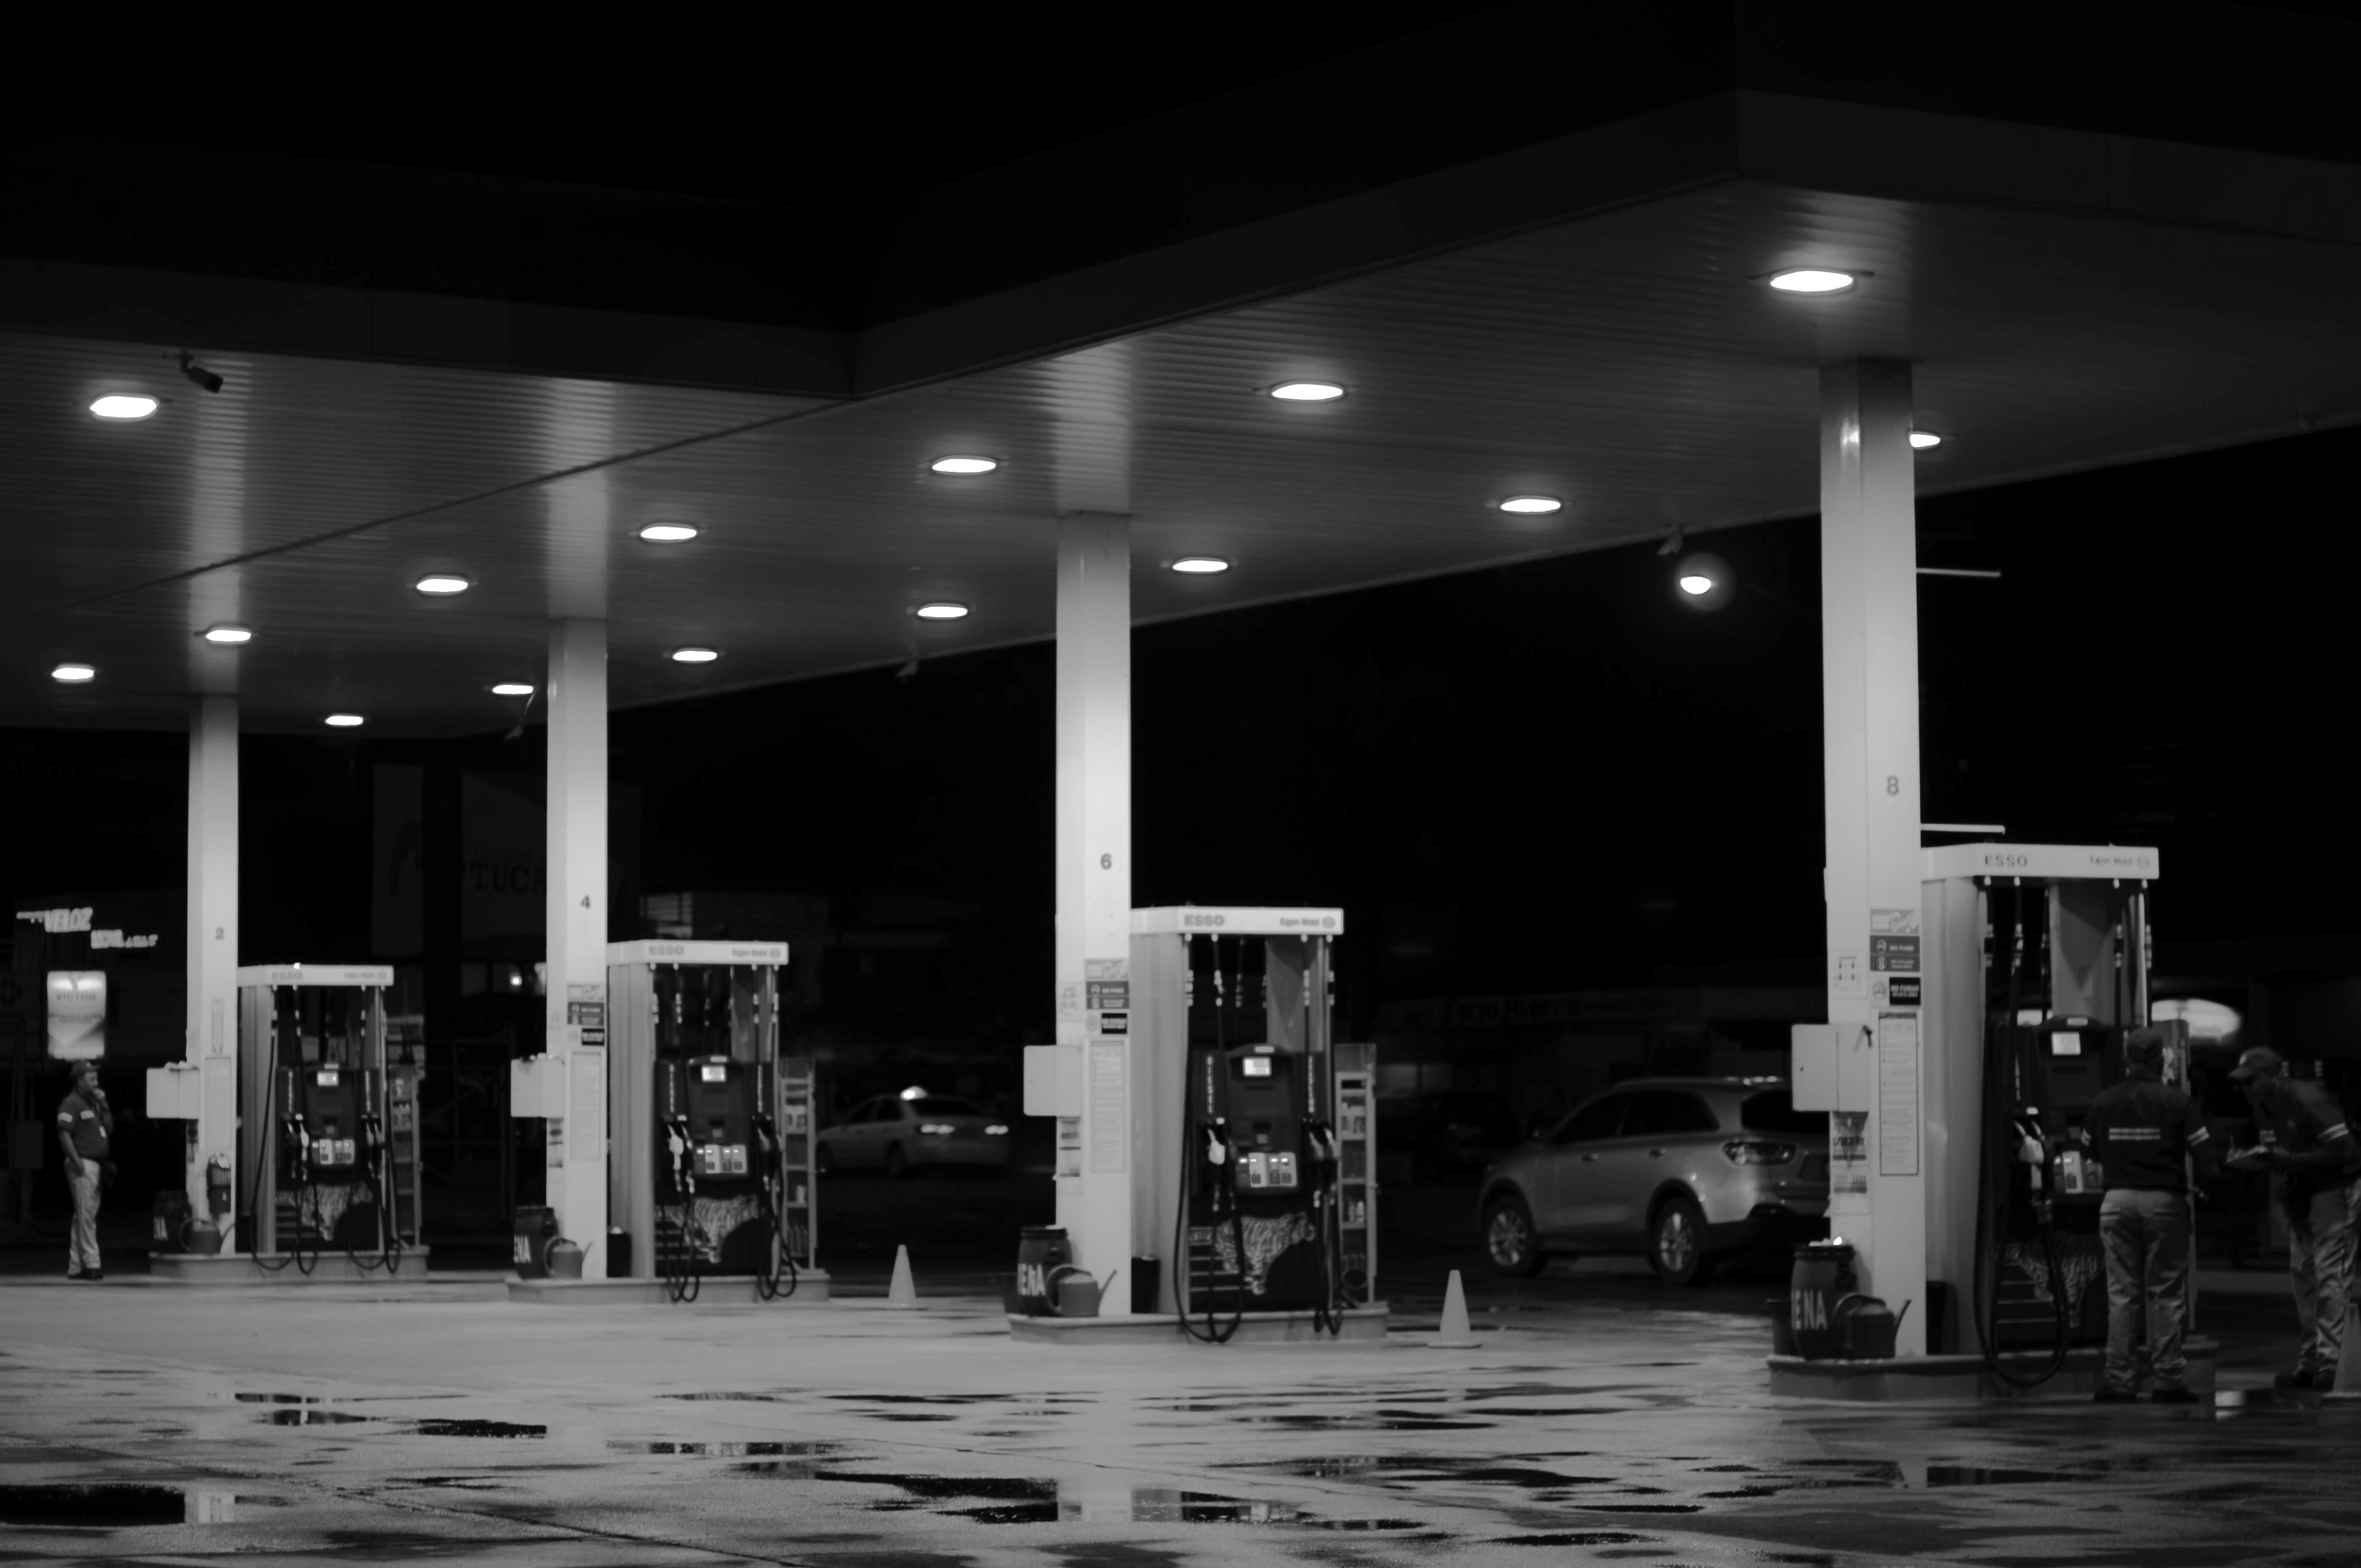 TGS Baltic advised Viada LT, the biggest chain of gas stations in Lithuania, in making a public offering of bonds